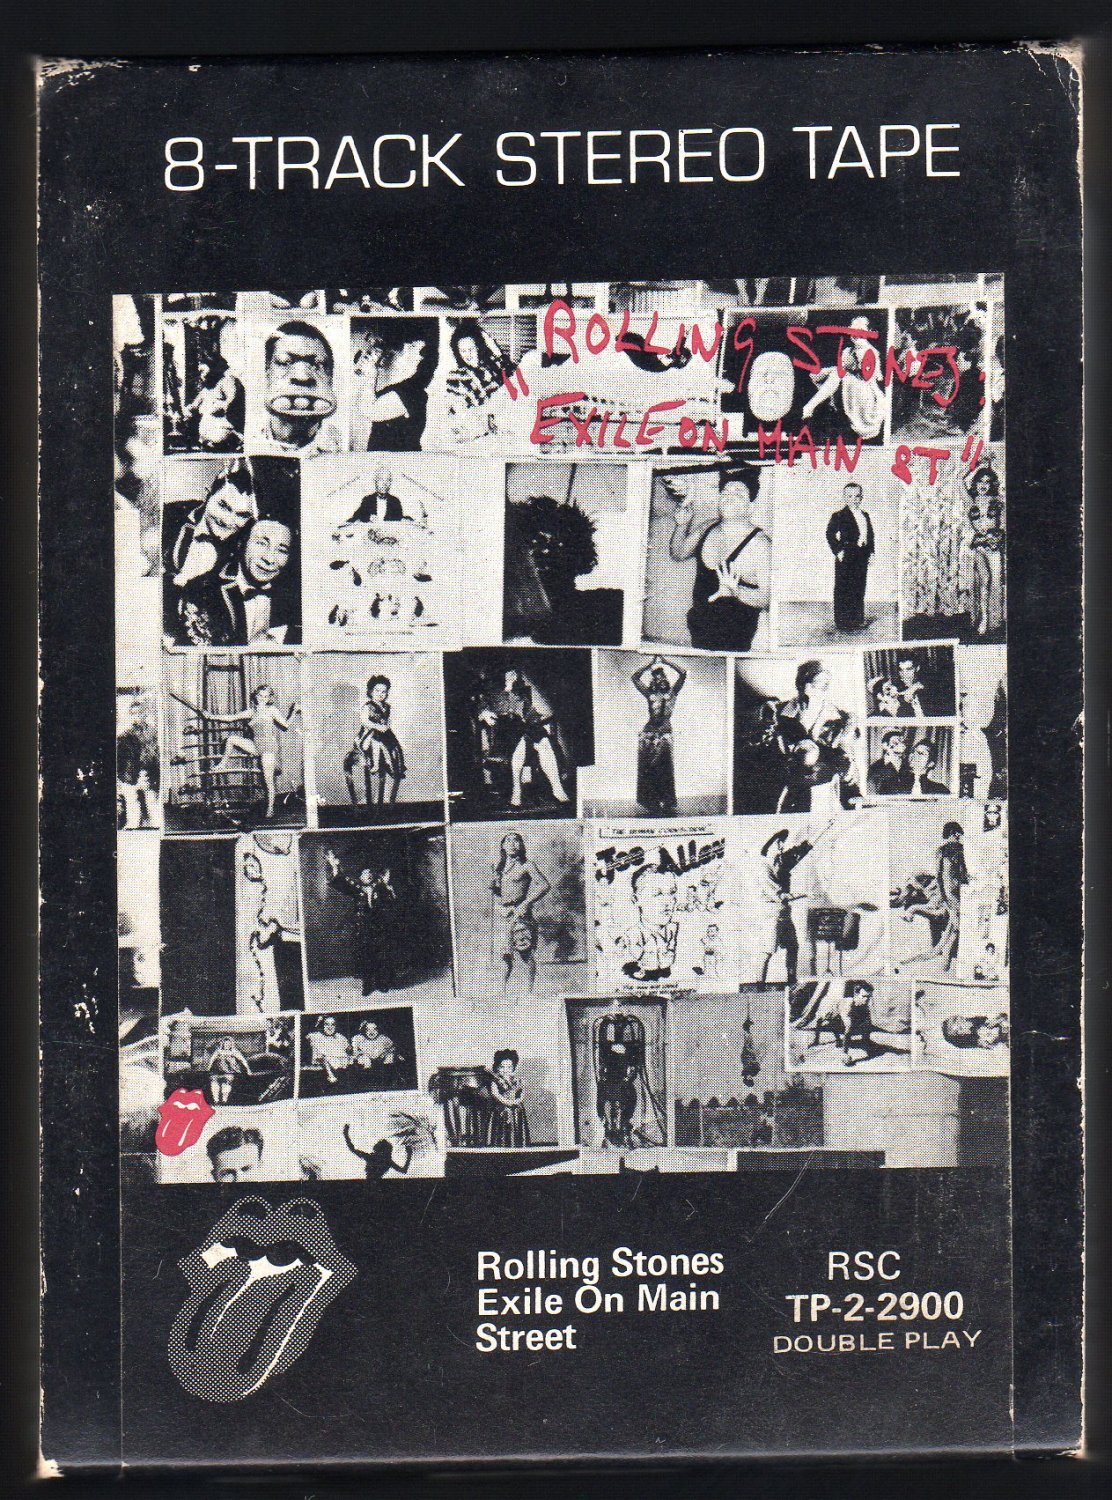 Rolling Stones - Exile On Main Street 1972 ATLANTIC MUSIDOR Double Play A22 8-TRACK TAPE